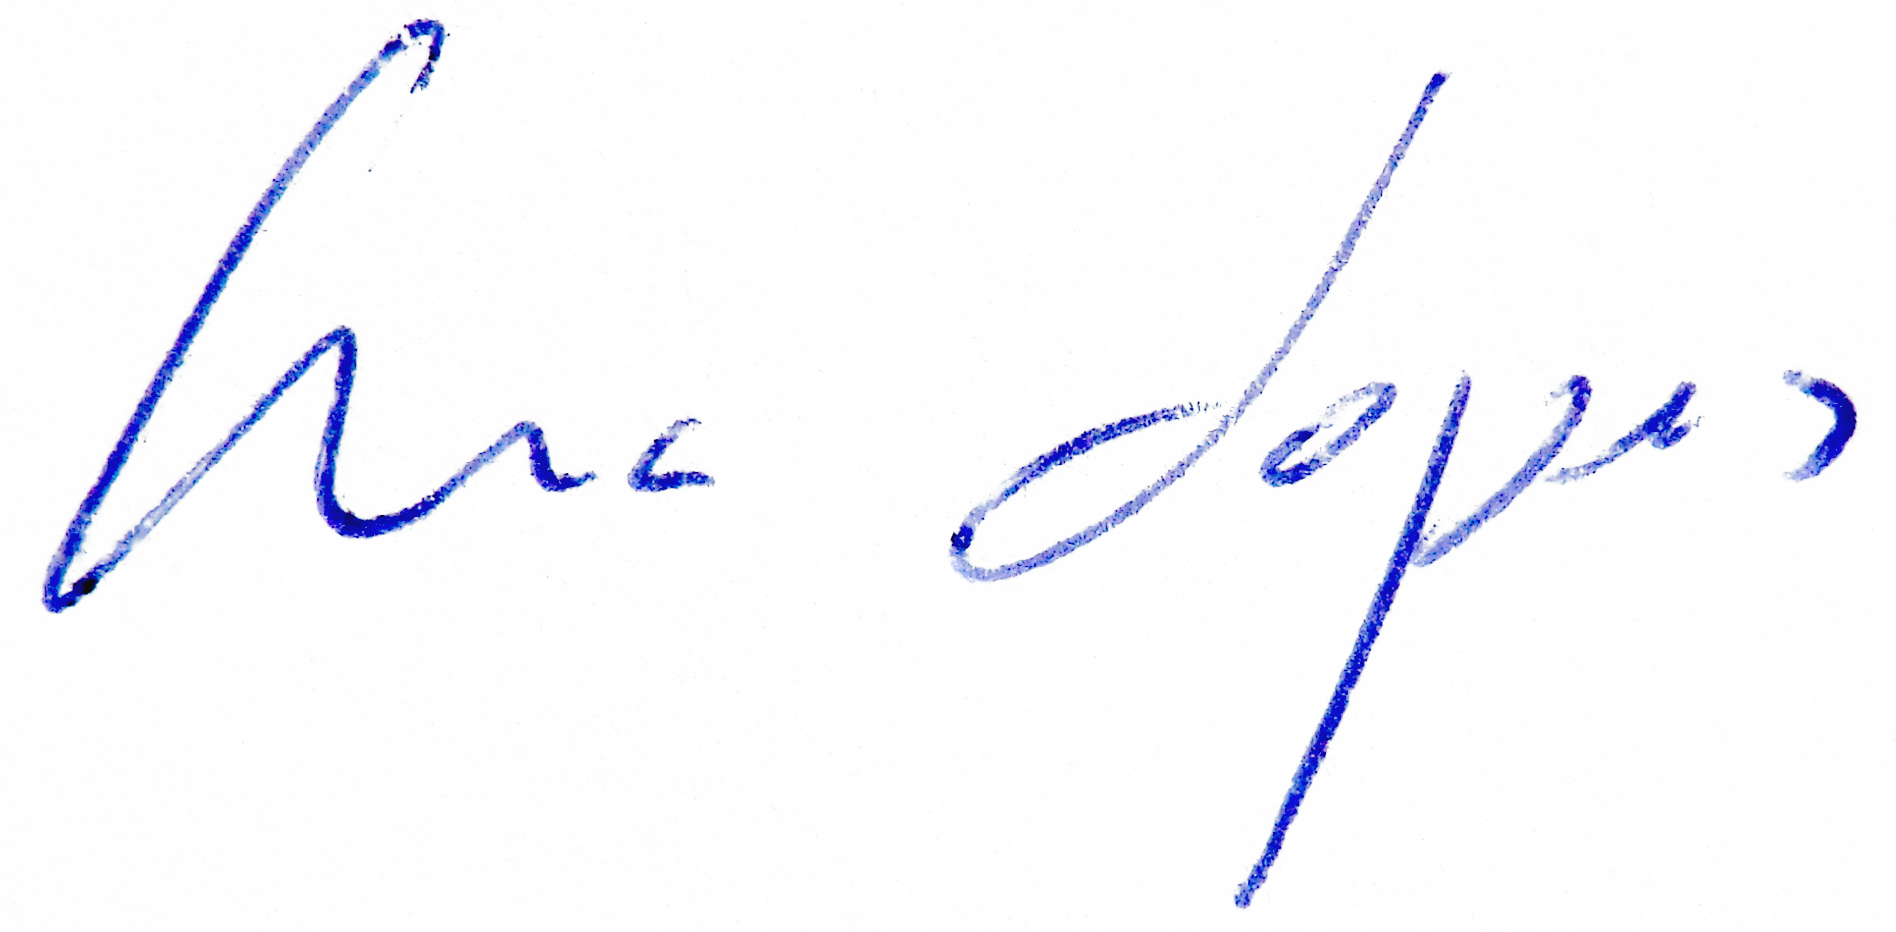 Ana Lopes's Signature